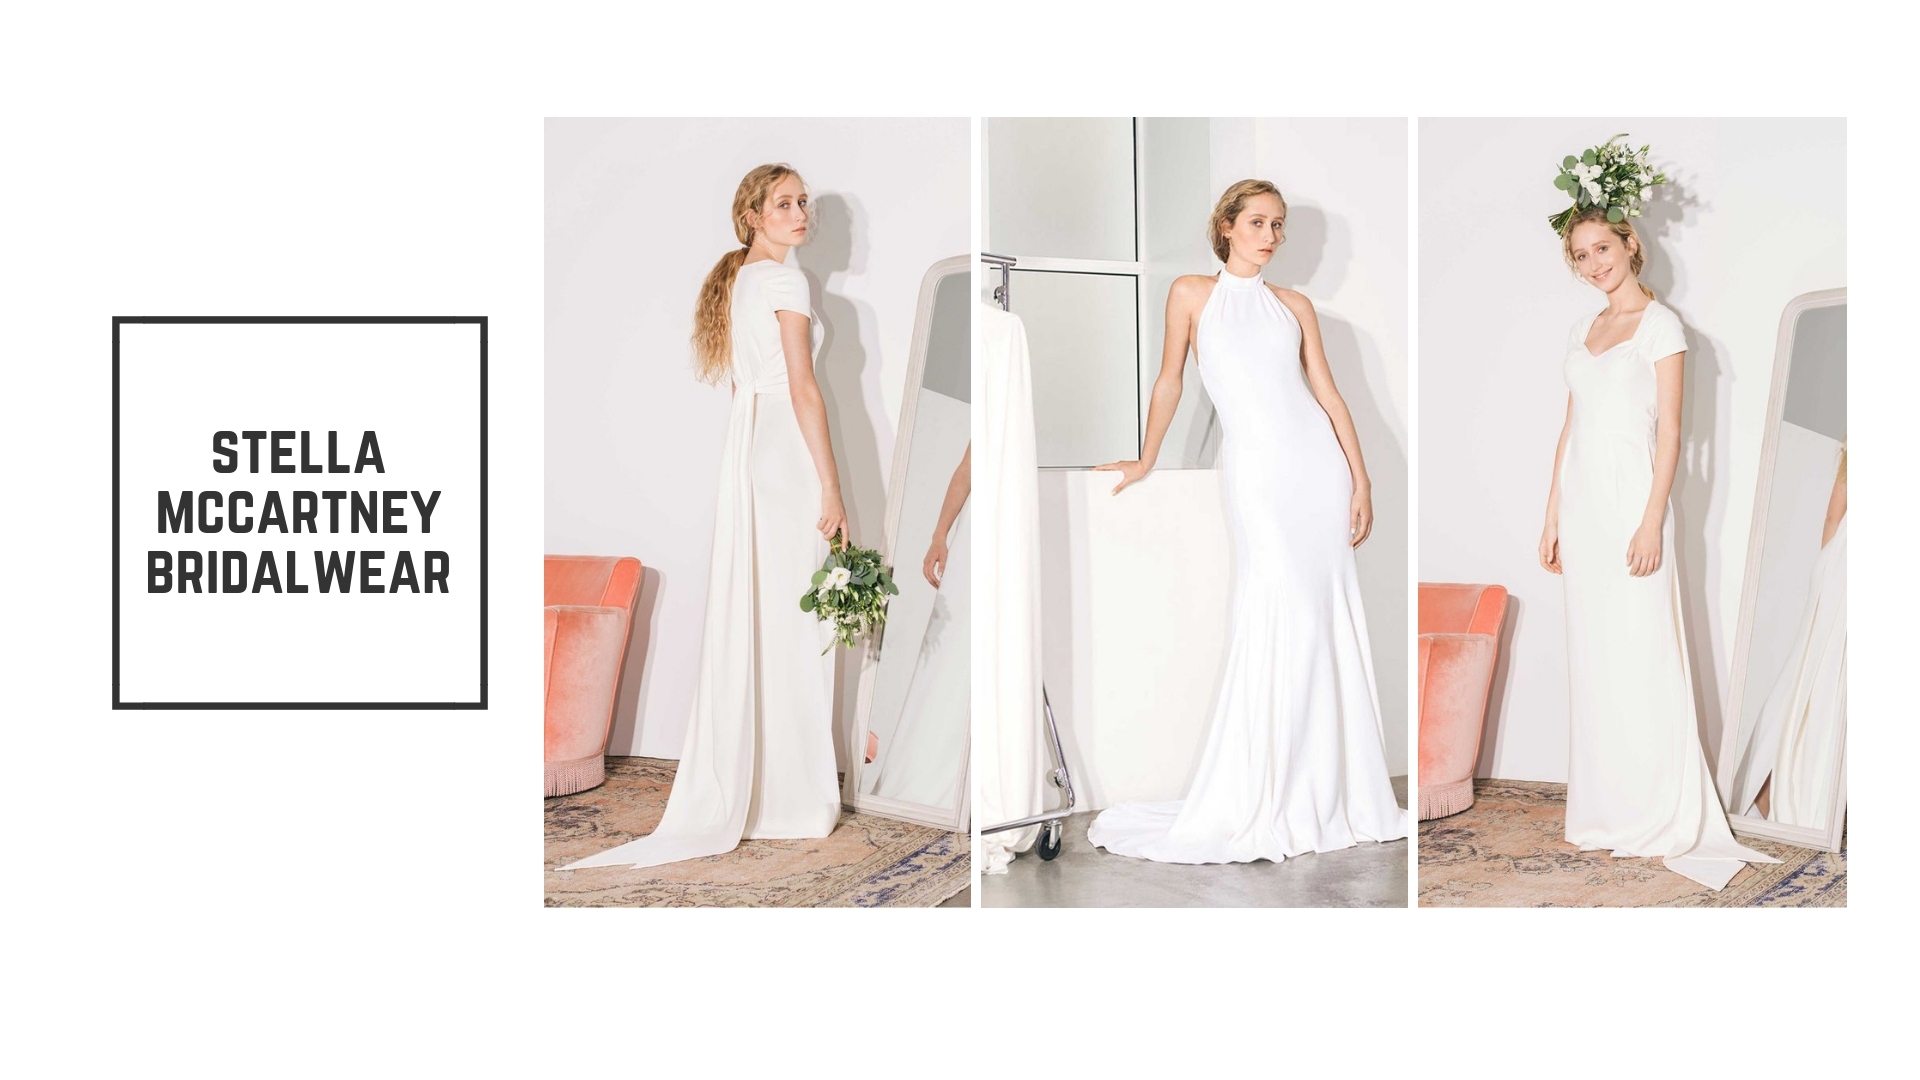 Stella McCartney debuts bridalwear for women of all ages